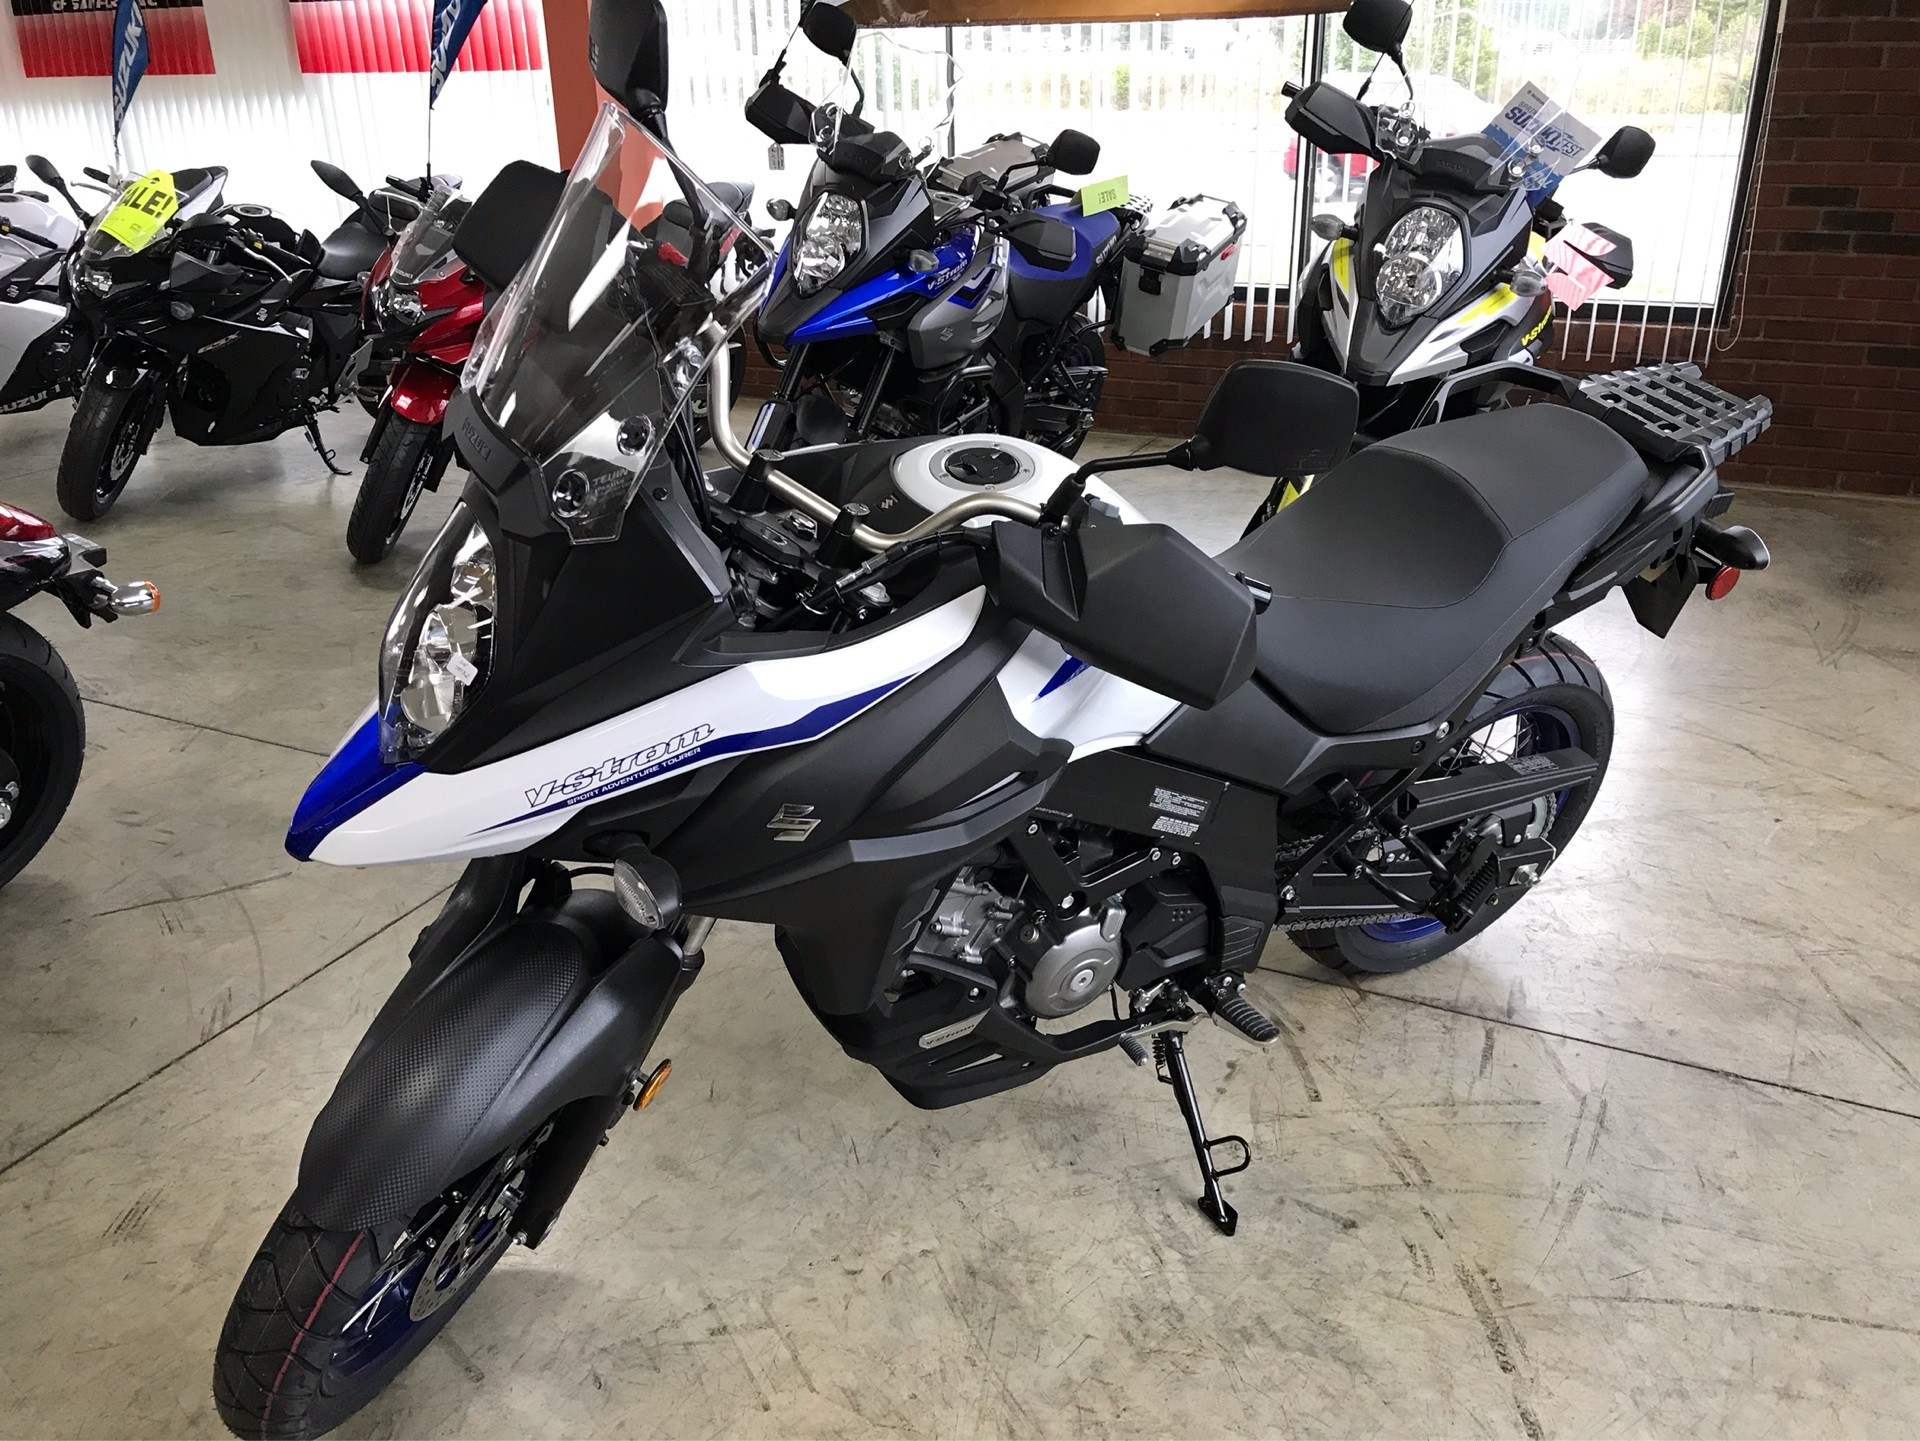 2019 Suzuki V-Strom 650XT in Sanford, North Carolina - Photo 4